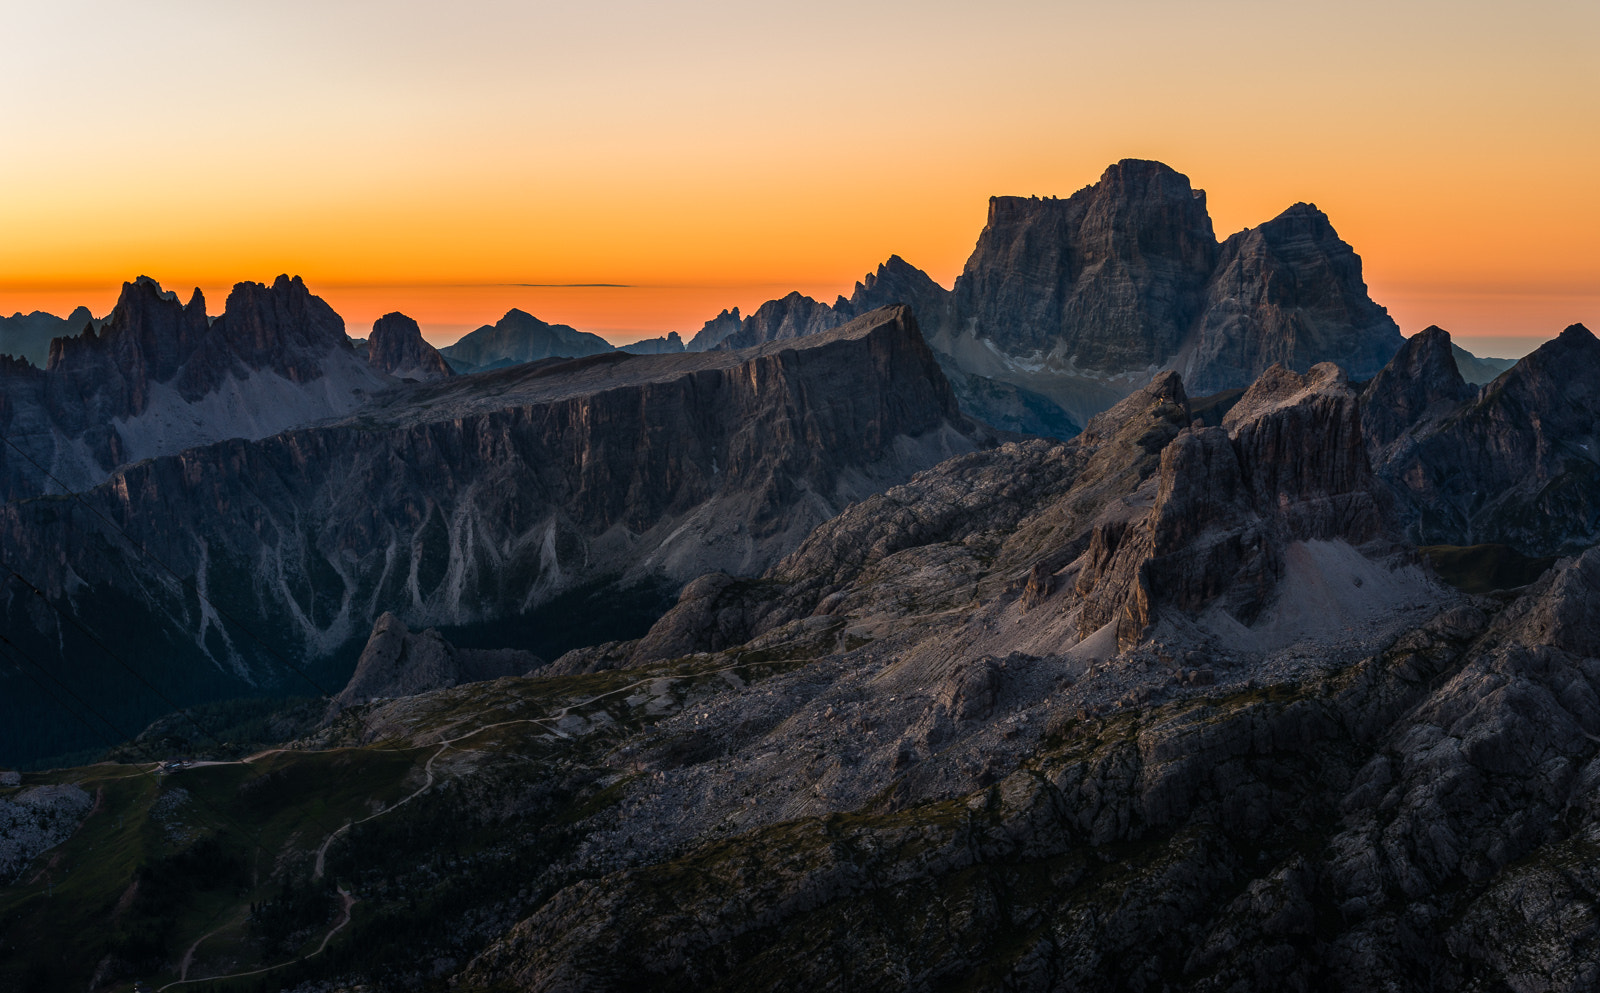 Photograph Sunrise view from Refugio Lagazuoi by Hans Kruse on 500px